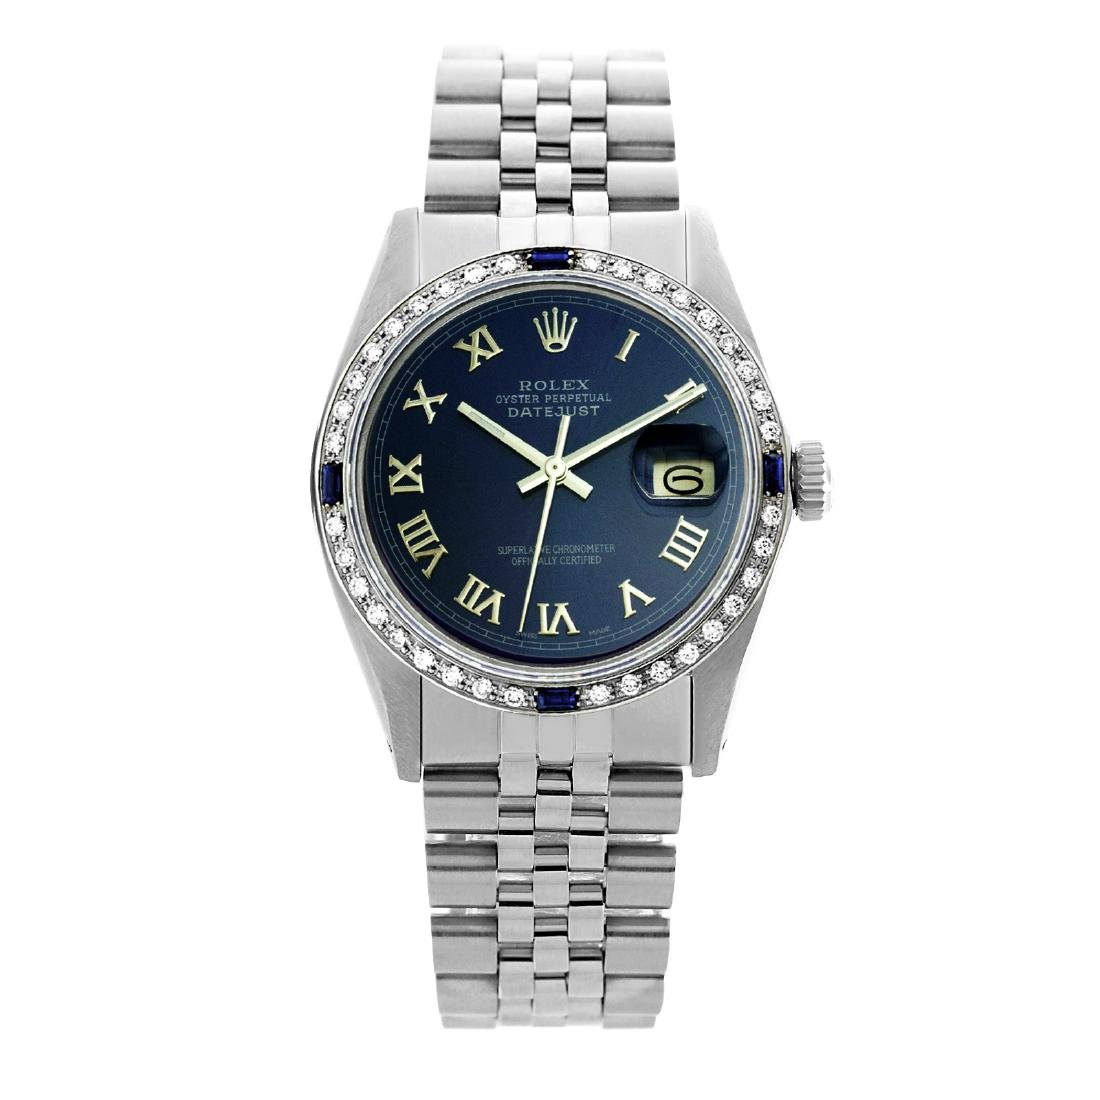 Rolex Men's Stainless Steel, QuickSet, Roman Dial with - 2